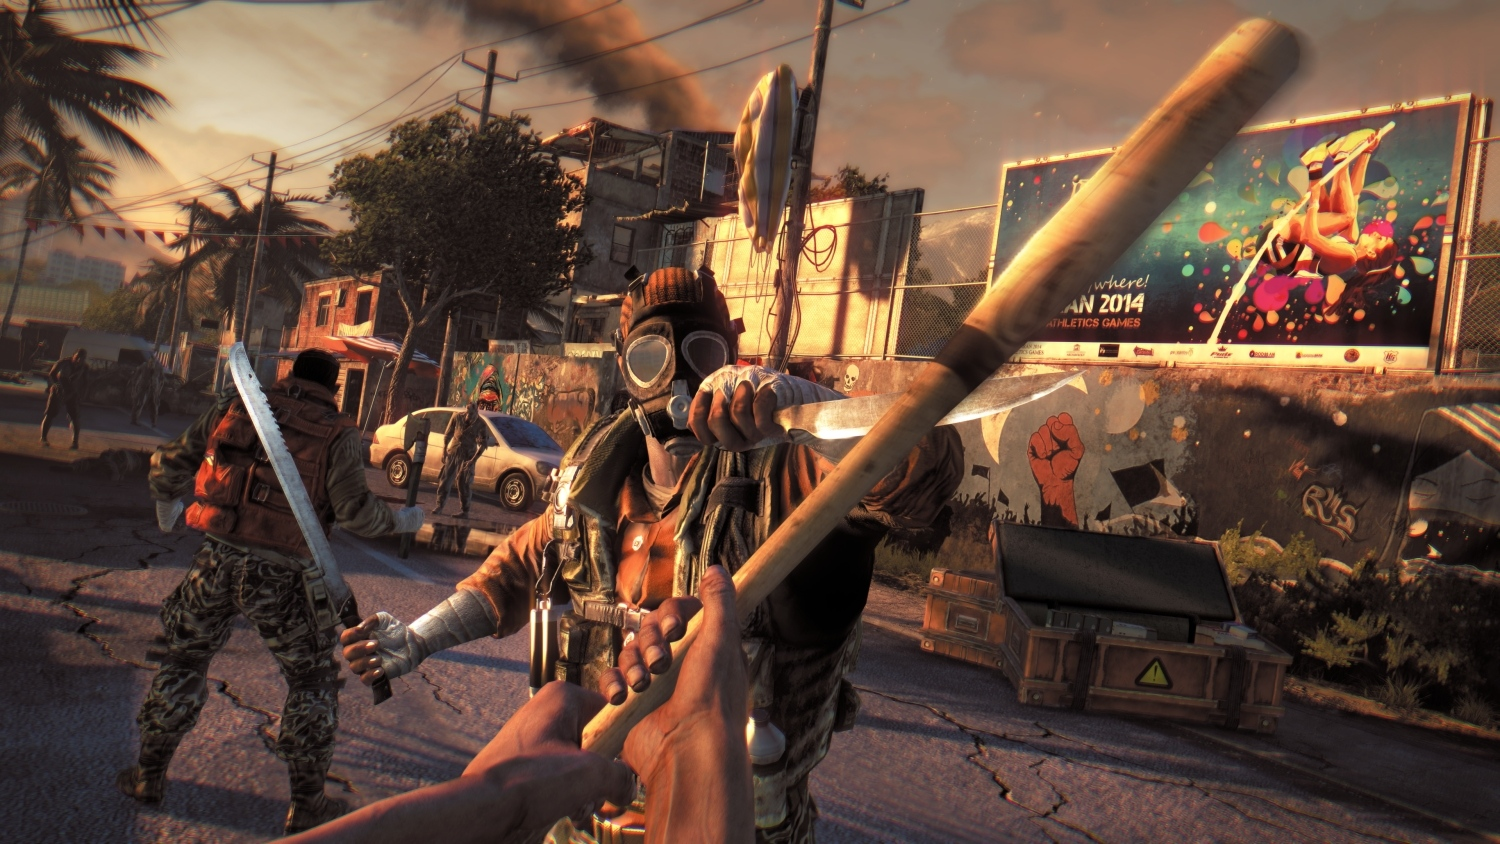 Dying light hard mode and ultimate survivor bundle out march 10